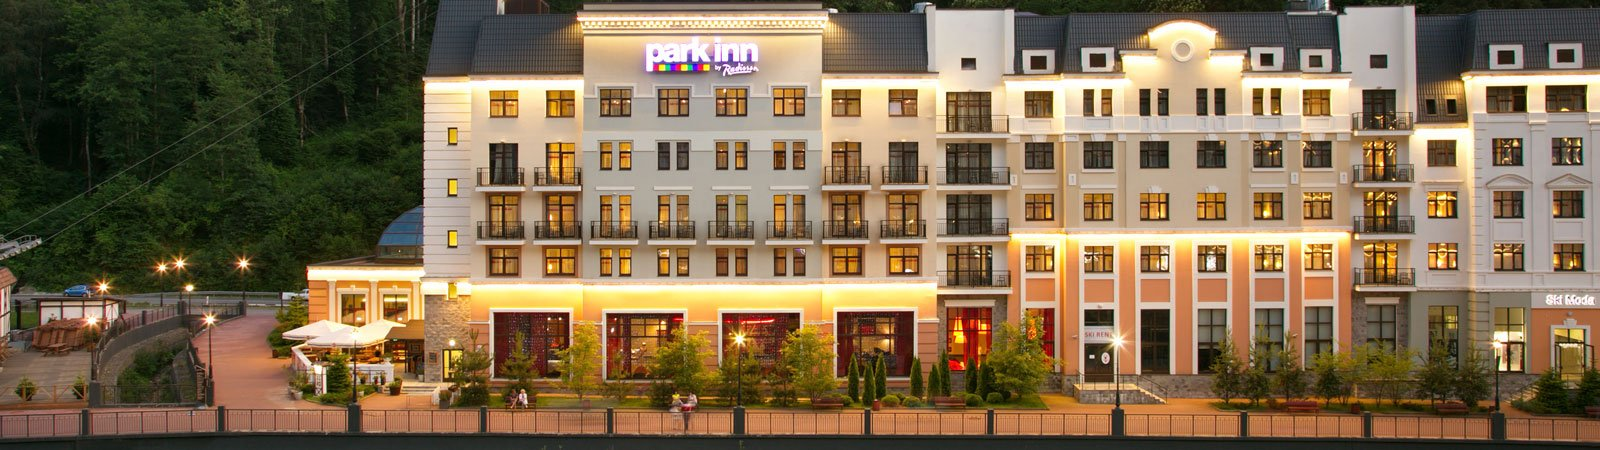 Отель «Park Inn by Radisson Rosa Khutor» Сочи